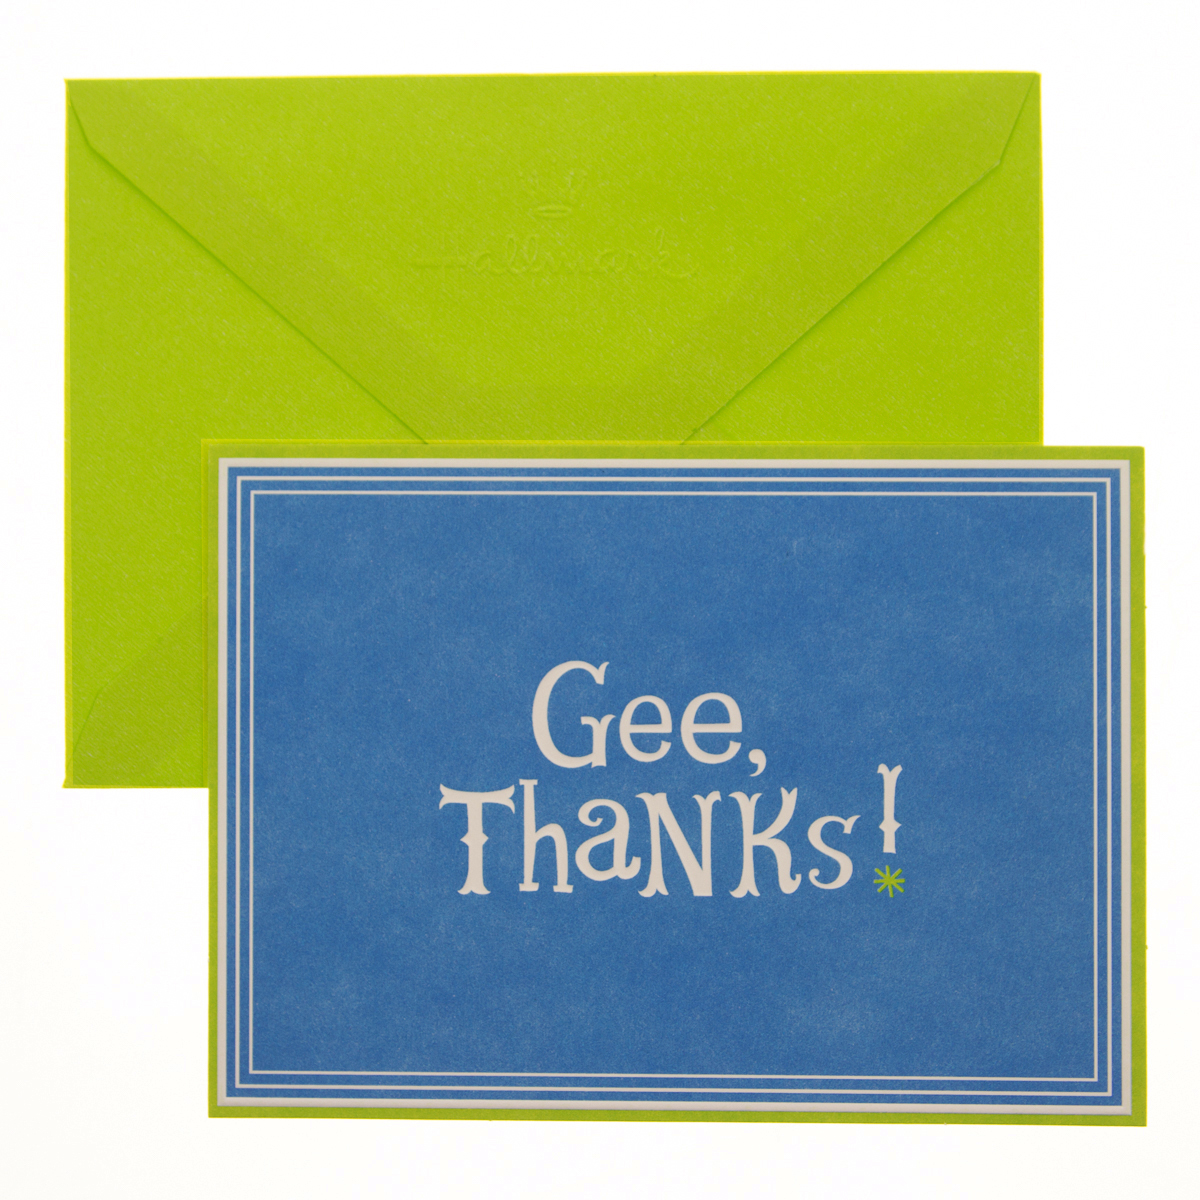 50 Pack Hallmark 4 x 5.5 Blank Inside Thank You Cards With Envelopes Bulk Set